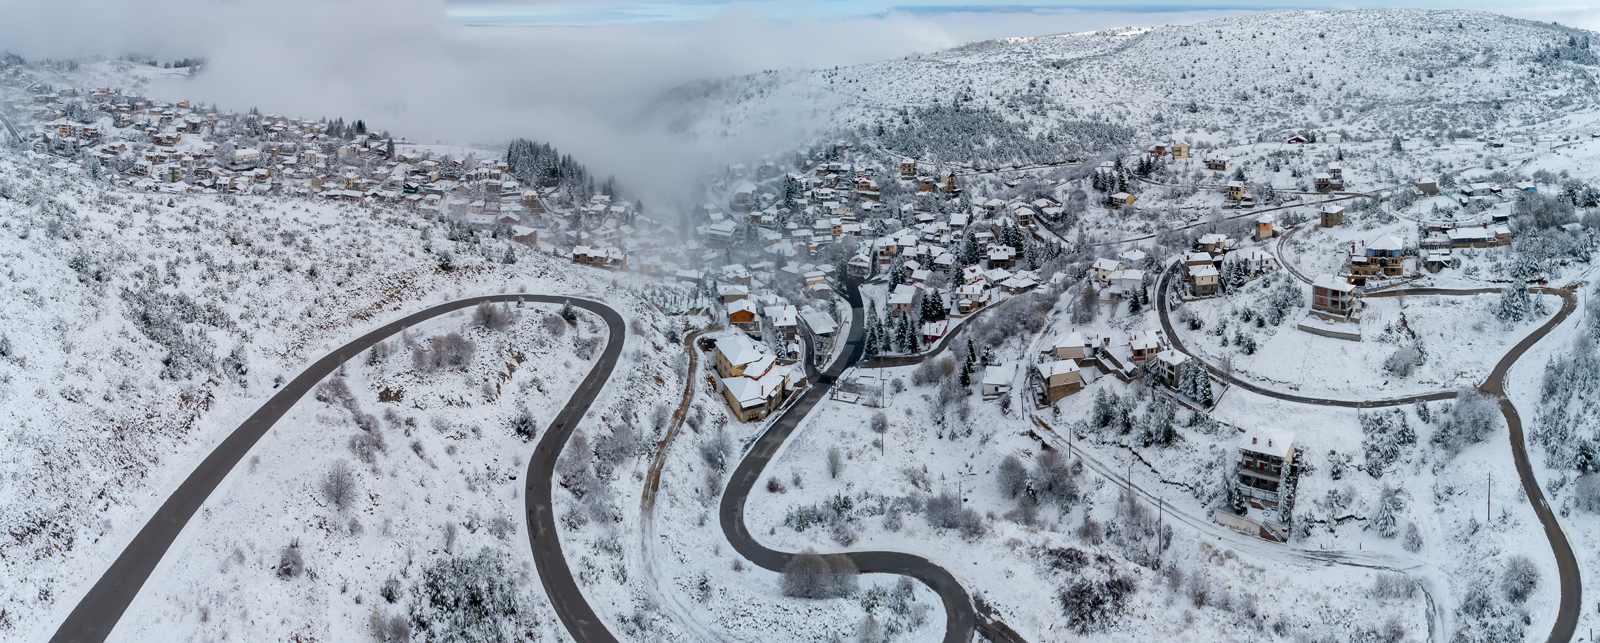 Enlarged image - Snowy landscape village in Greece